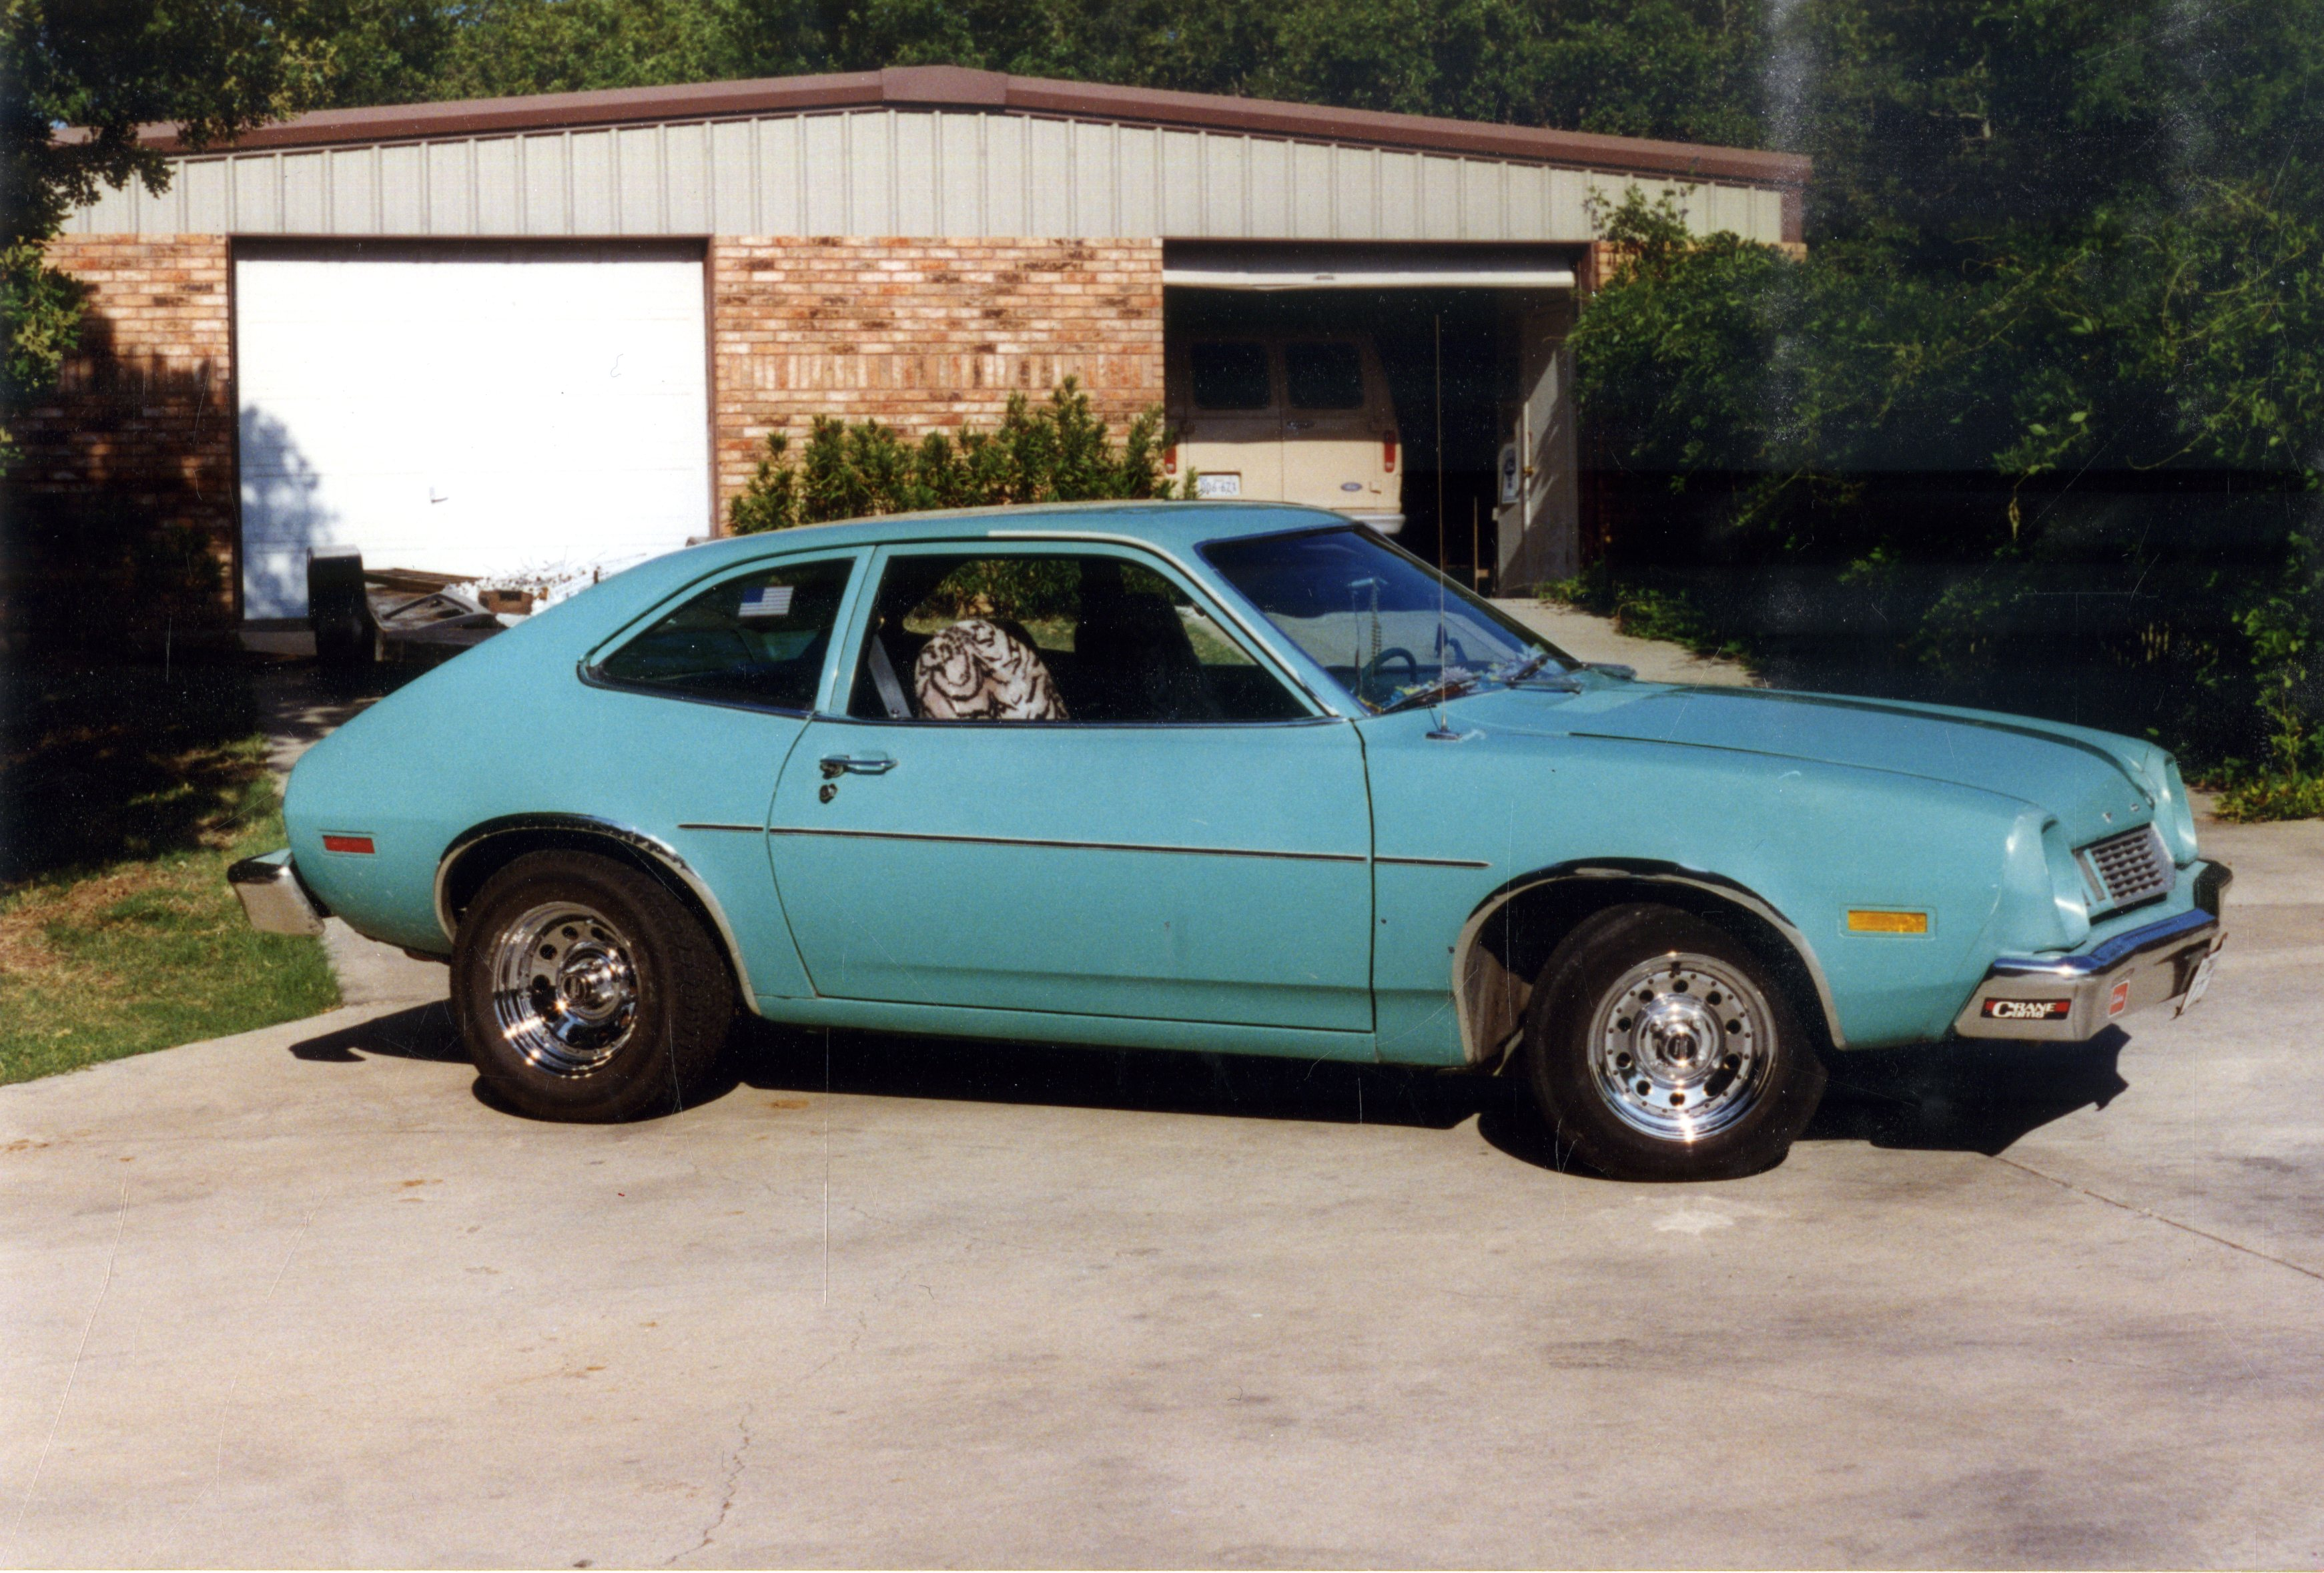 disasters of ford pinto essay Free essay: the ethical dilemma in the ford pinto case on august 10, 1978  three young girls died in a 1973 ford pinto after being stuck from.